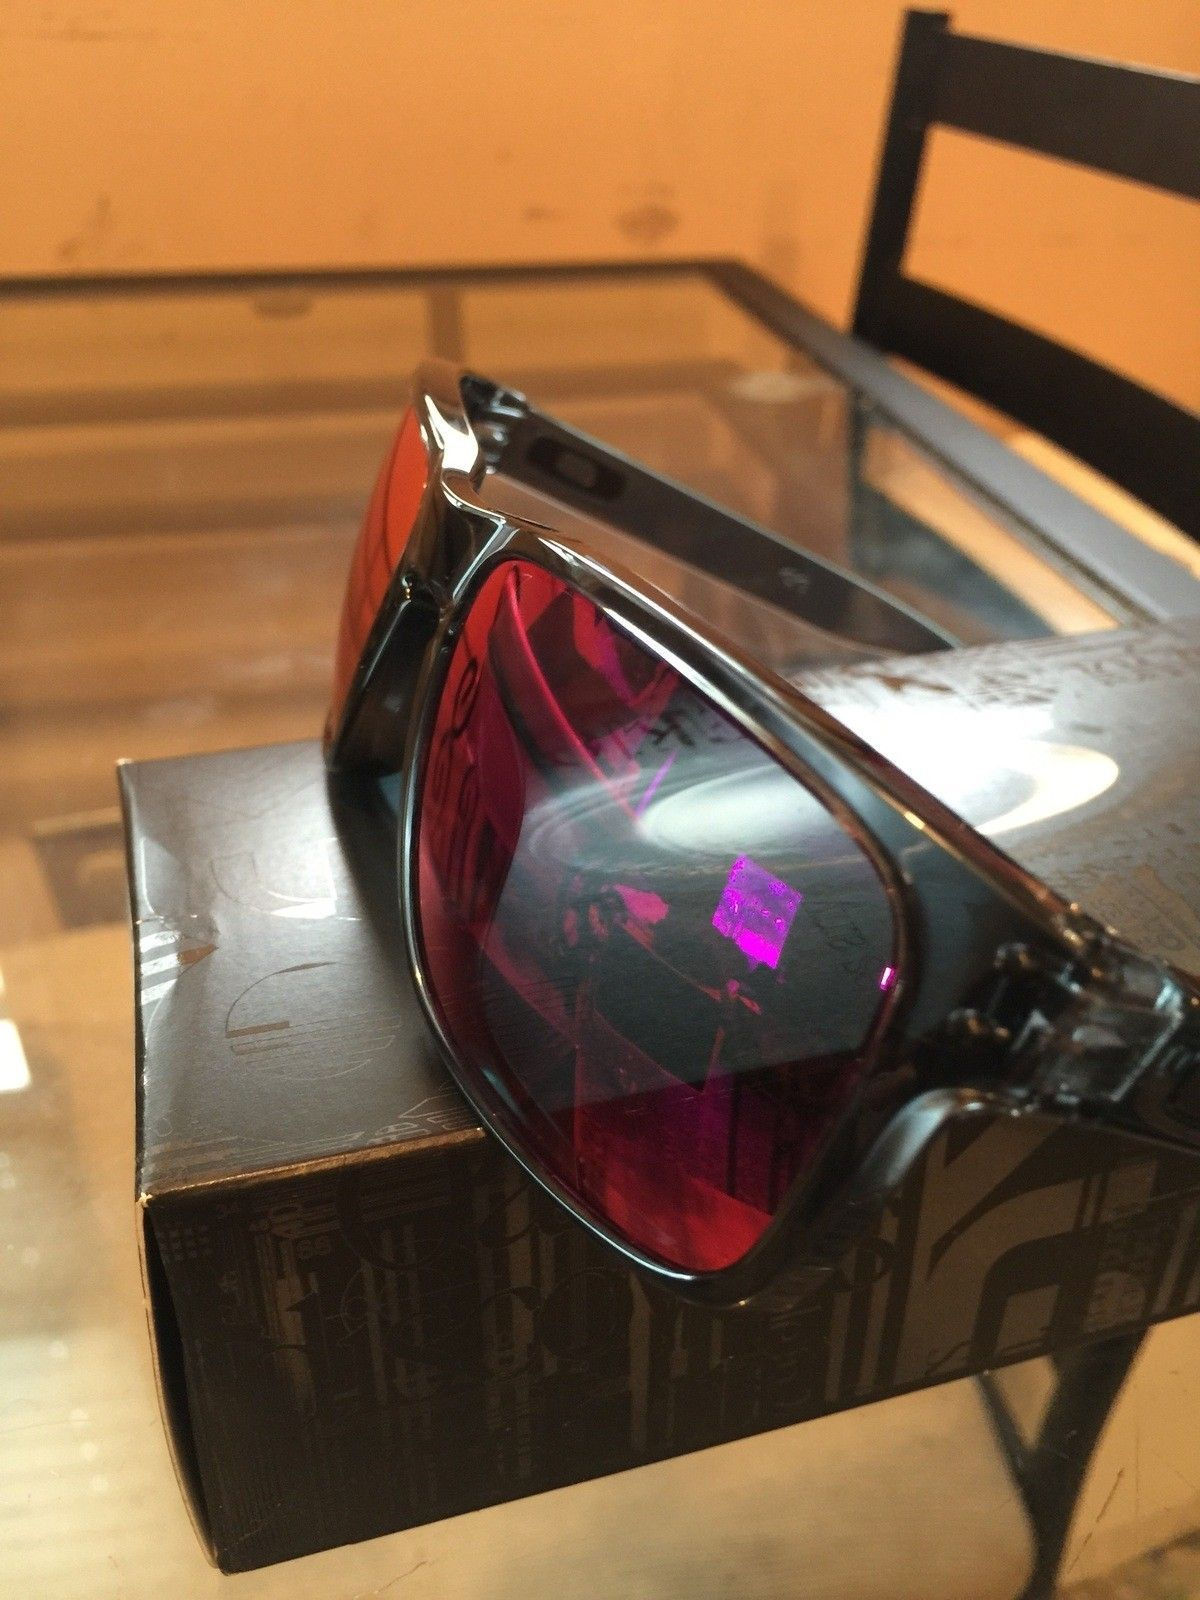 """Several items: Holbrooks, Frogskins, """"project Scar"""", Four, Mag Four S Plasma, X-Metal Stand - IMG_7033.jpg"""